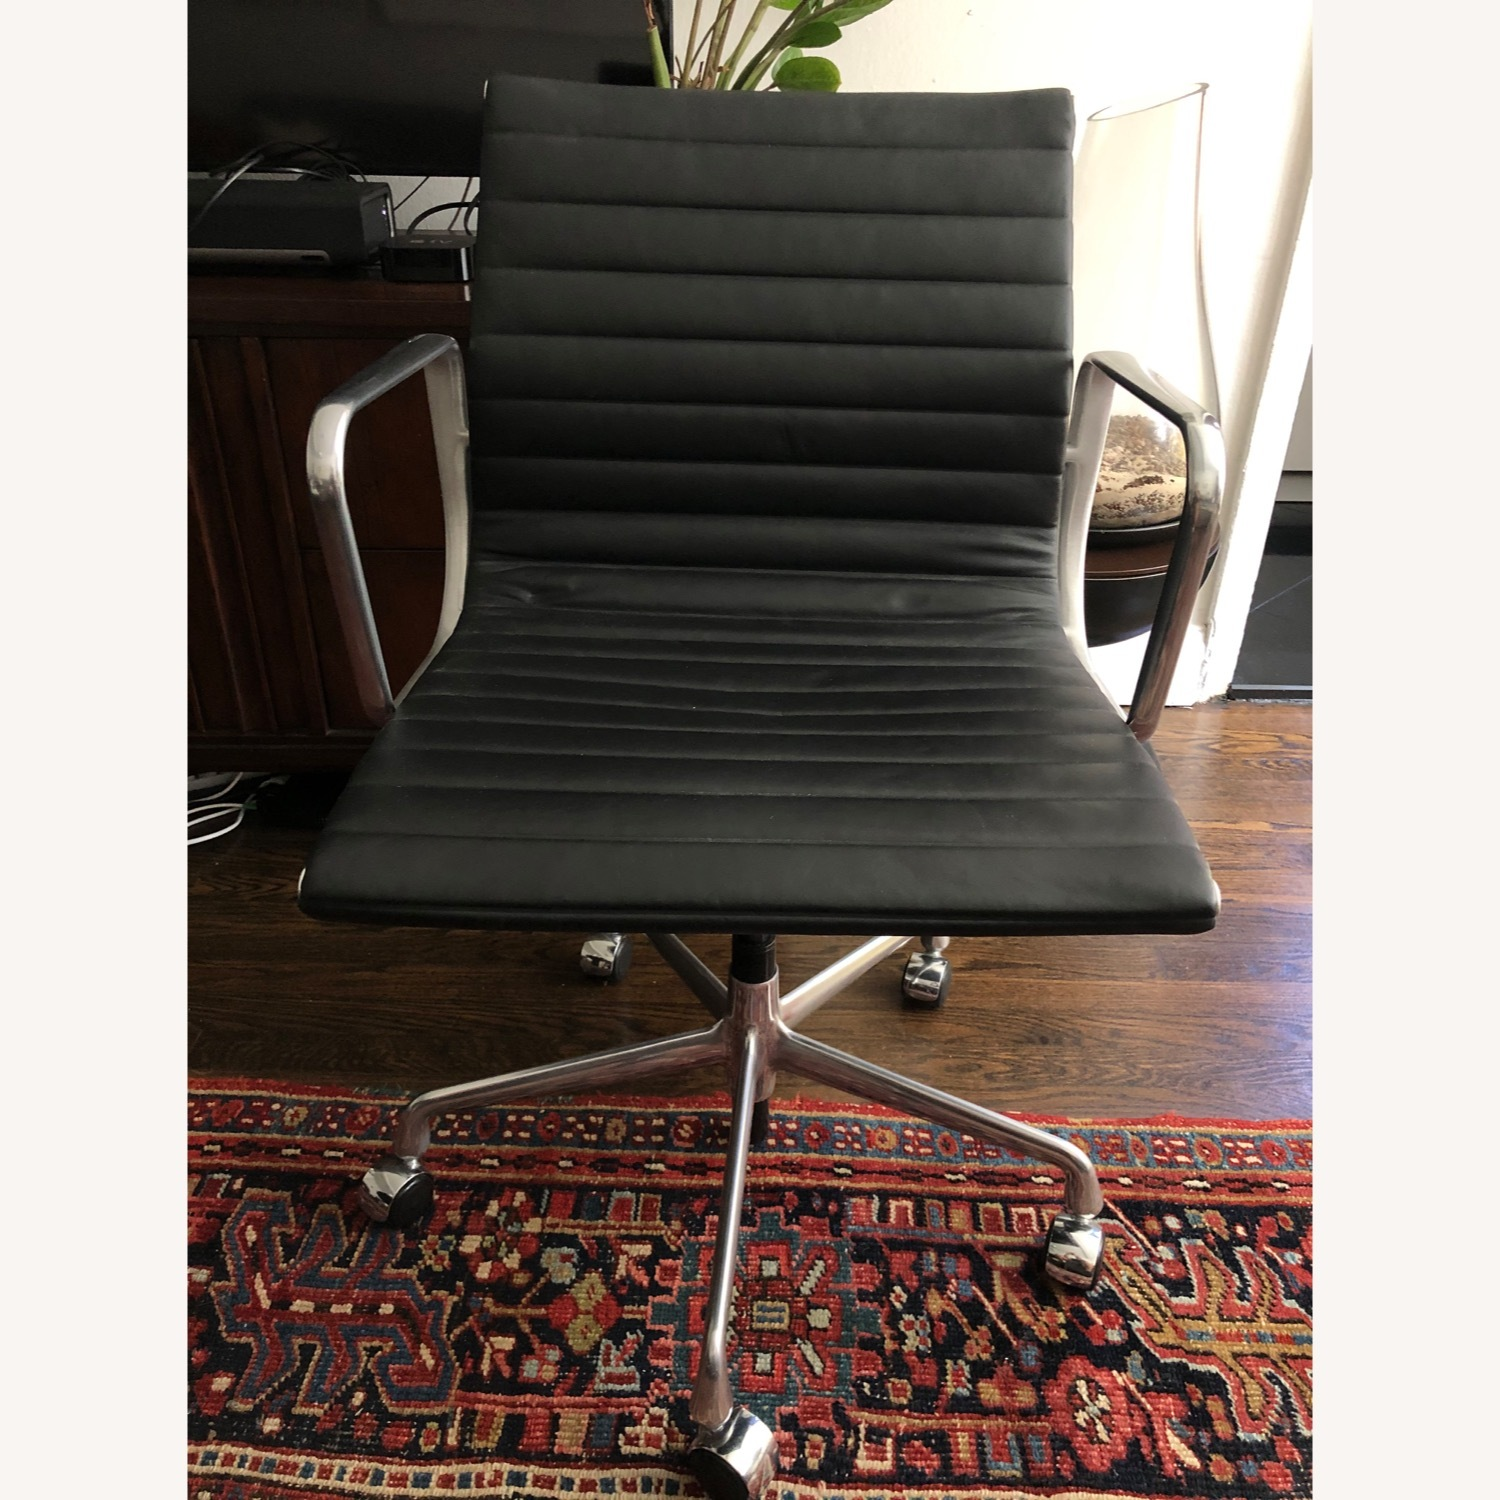 Eames Aluminum Group Chair - image-2